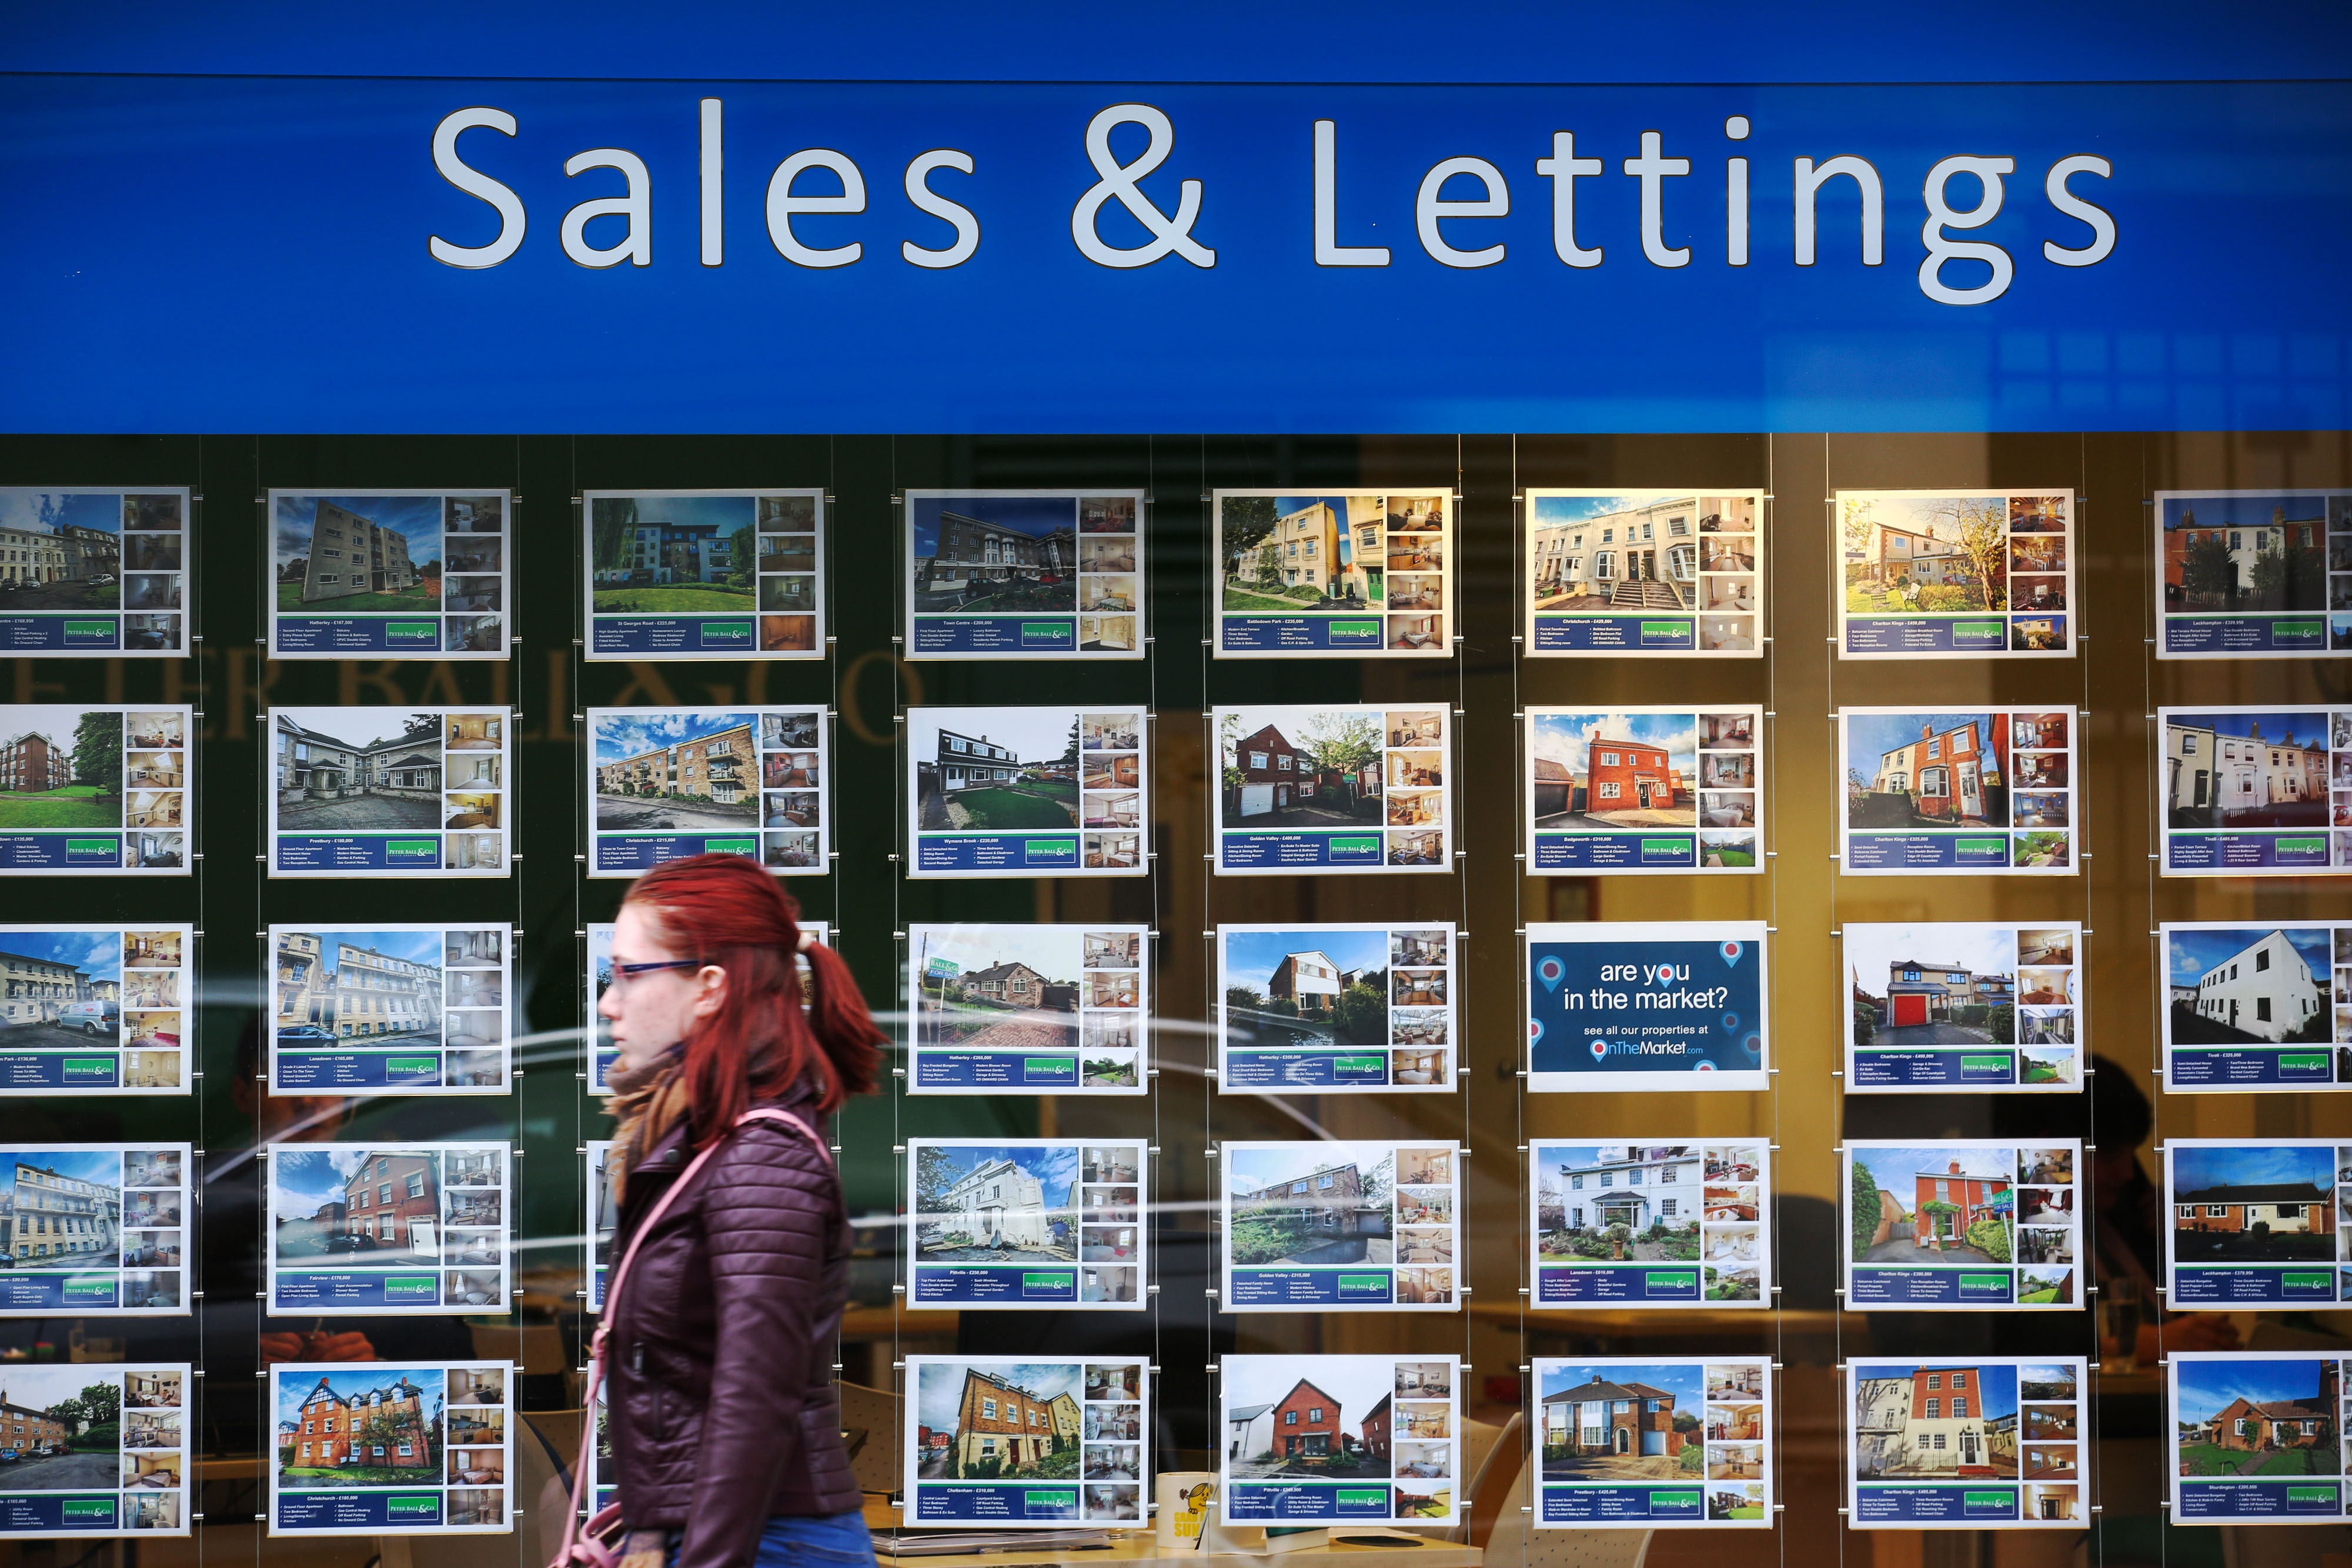 Research the different mortgage offers and rates available before making a decision